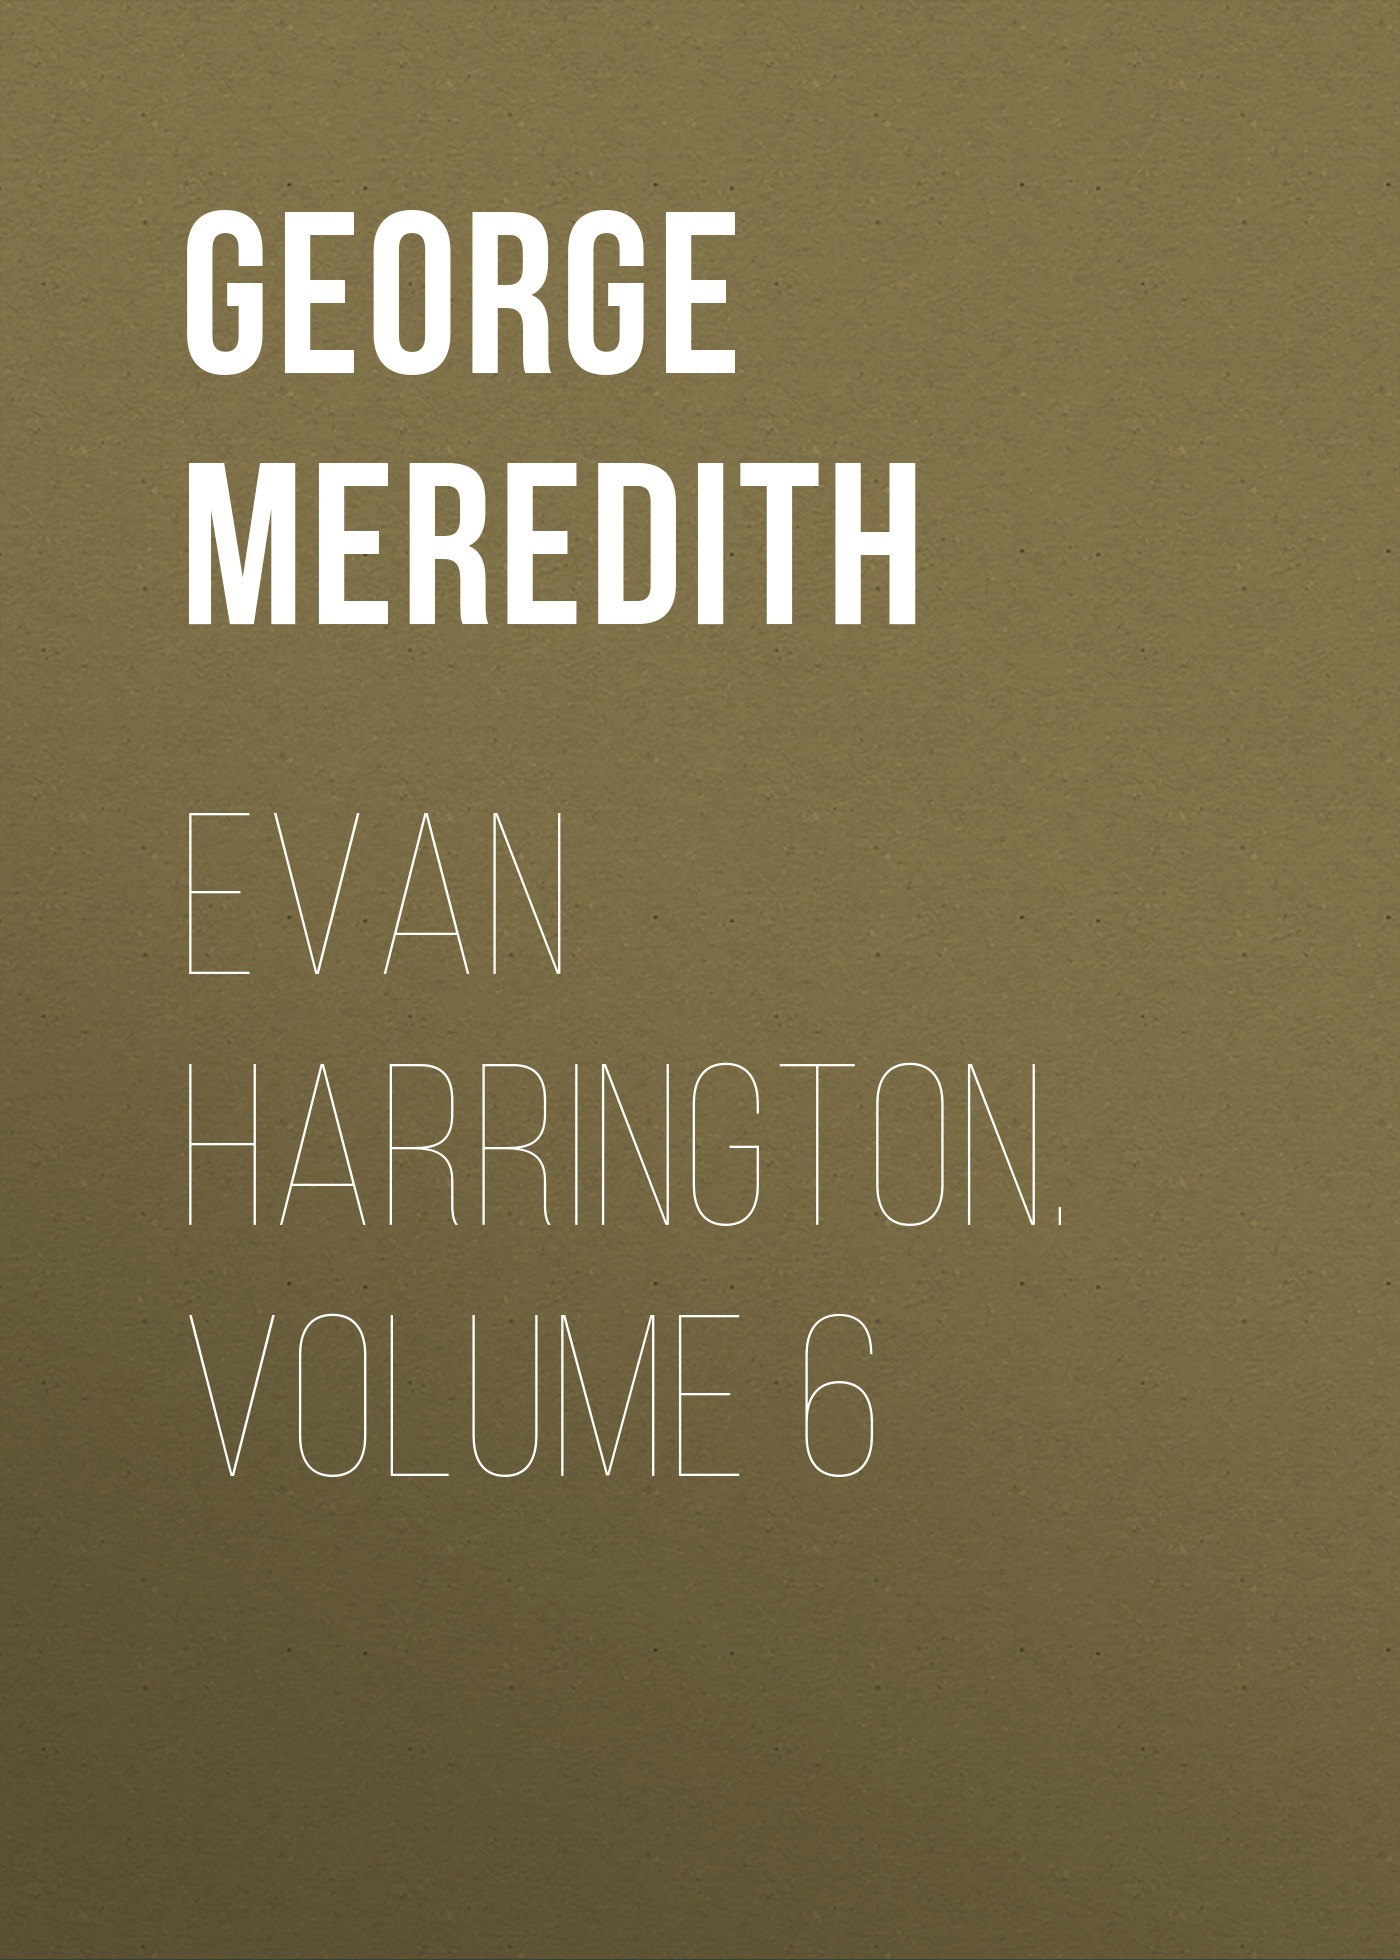 цена George Meredith Evan Harrington. Volume 6 в интернет-магазинах